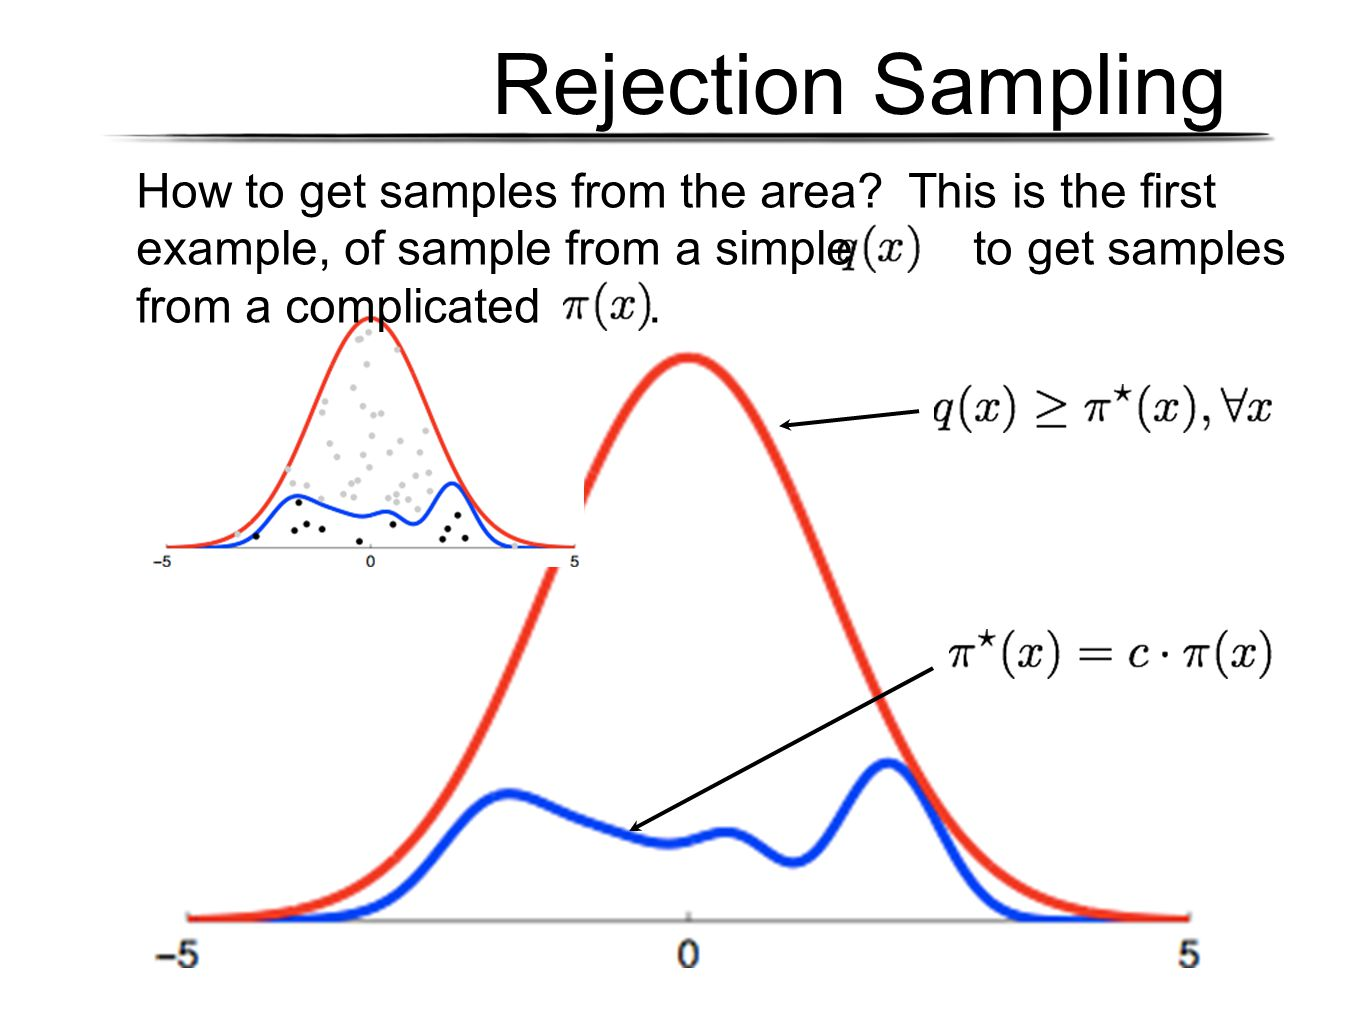 Rejection Sampling How to get samples from the area? This is the first example, of sample from a simple to get samples from a complicated.